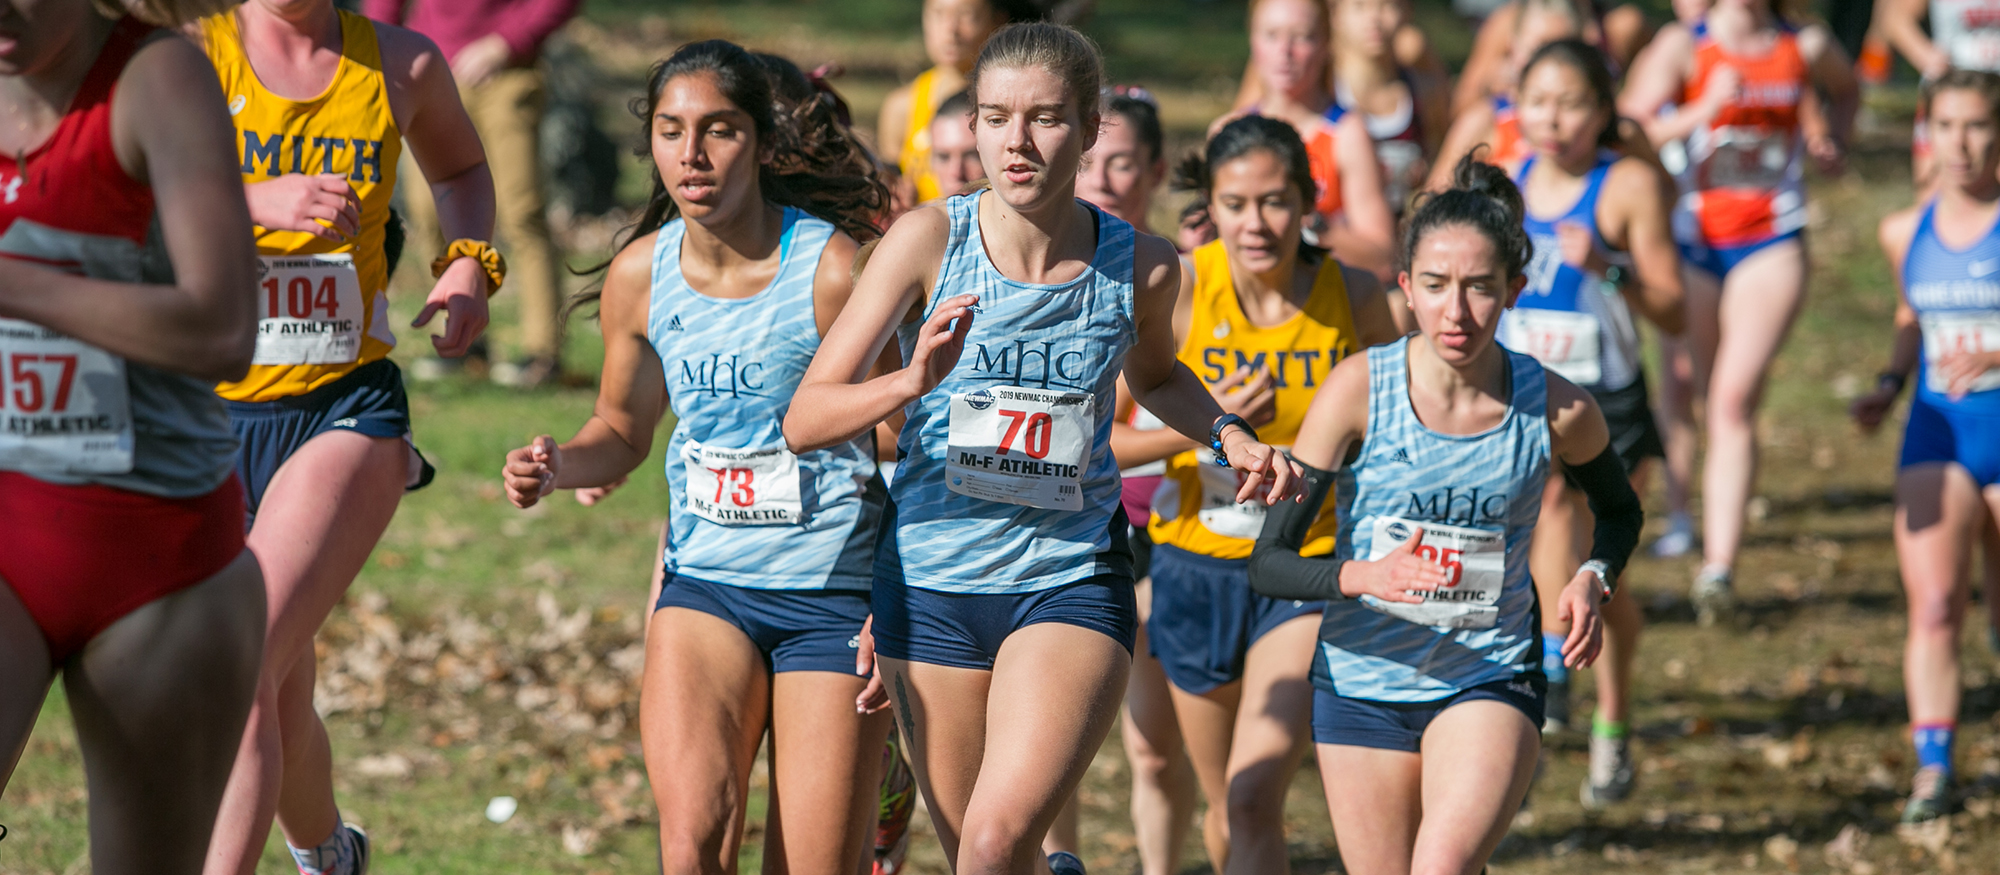 Cross Country Finishes Second at NEWMAC Championships For Highest Finish Since 1992; Selkin Named Rookie of the Year